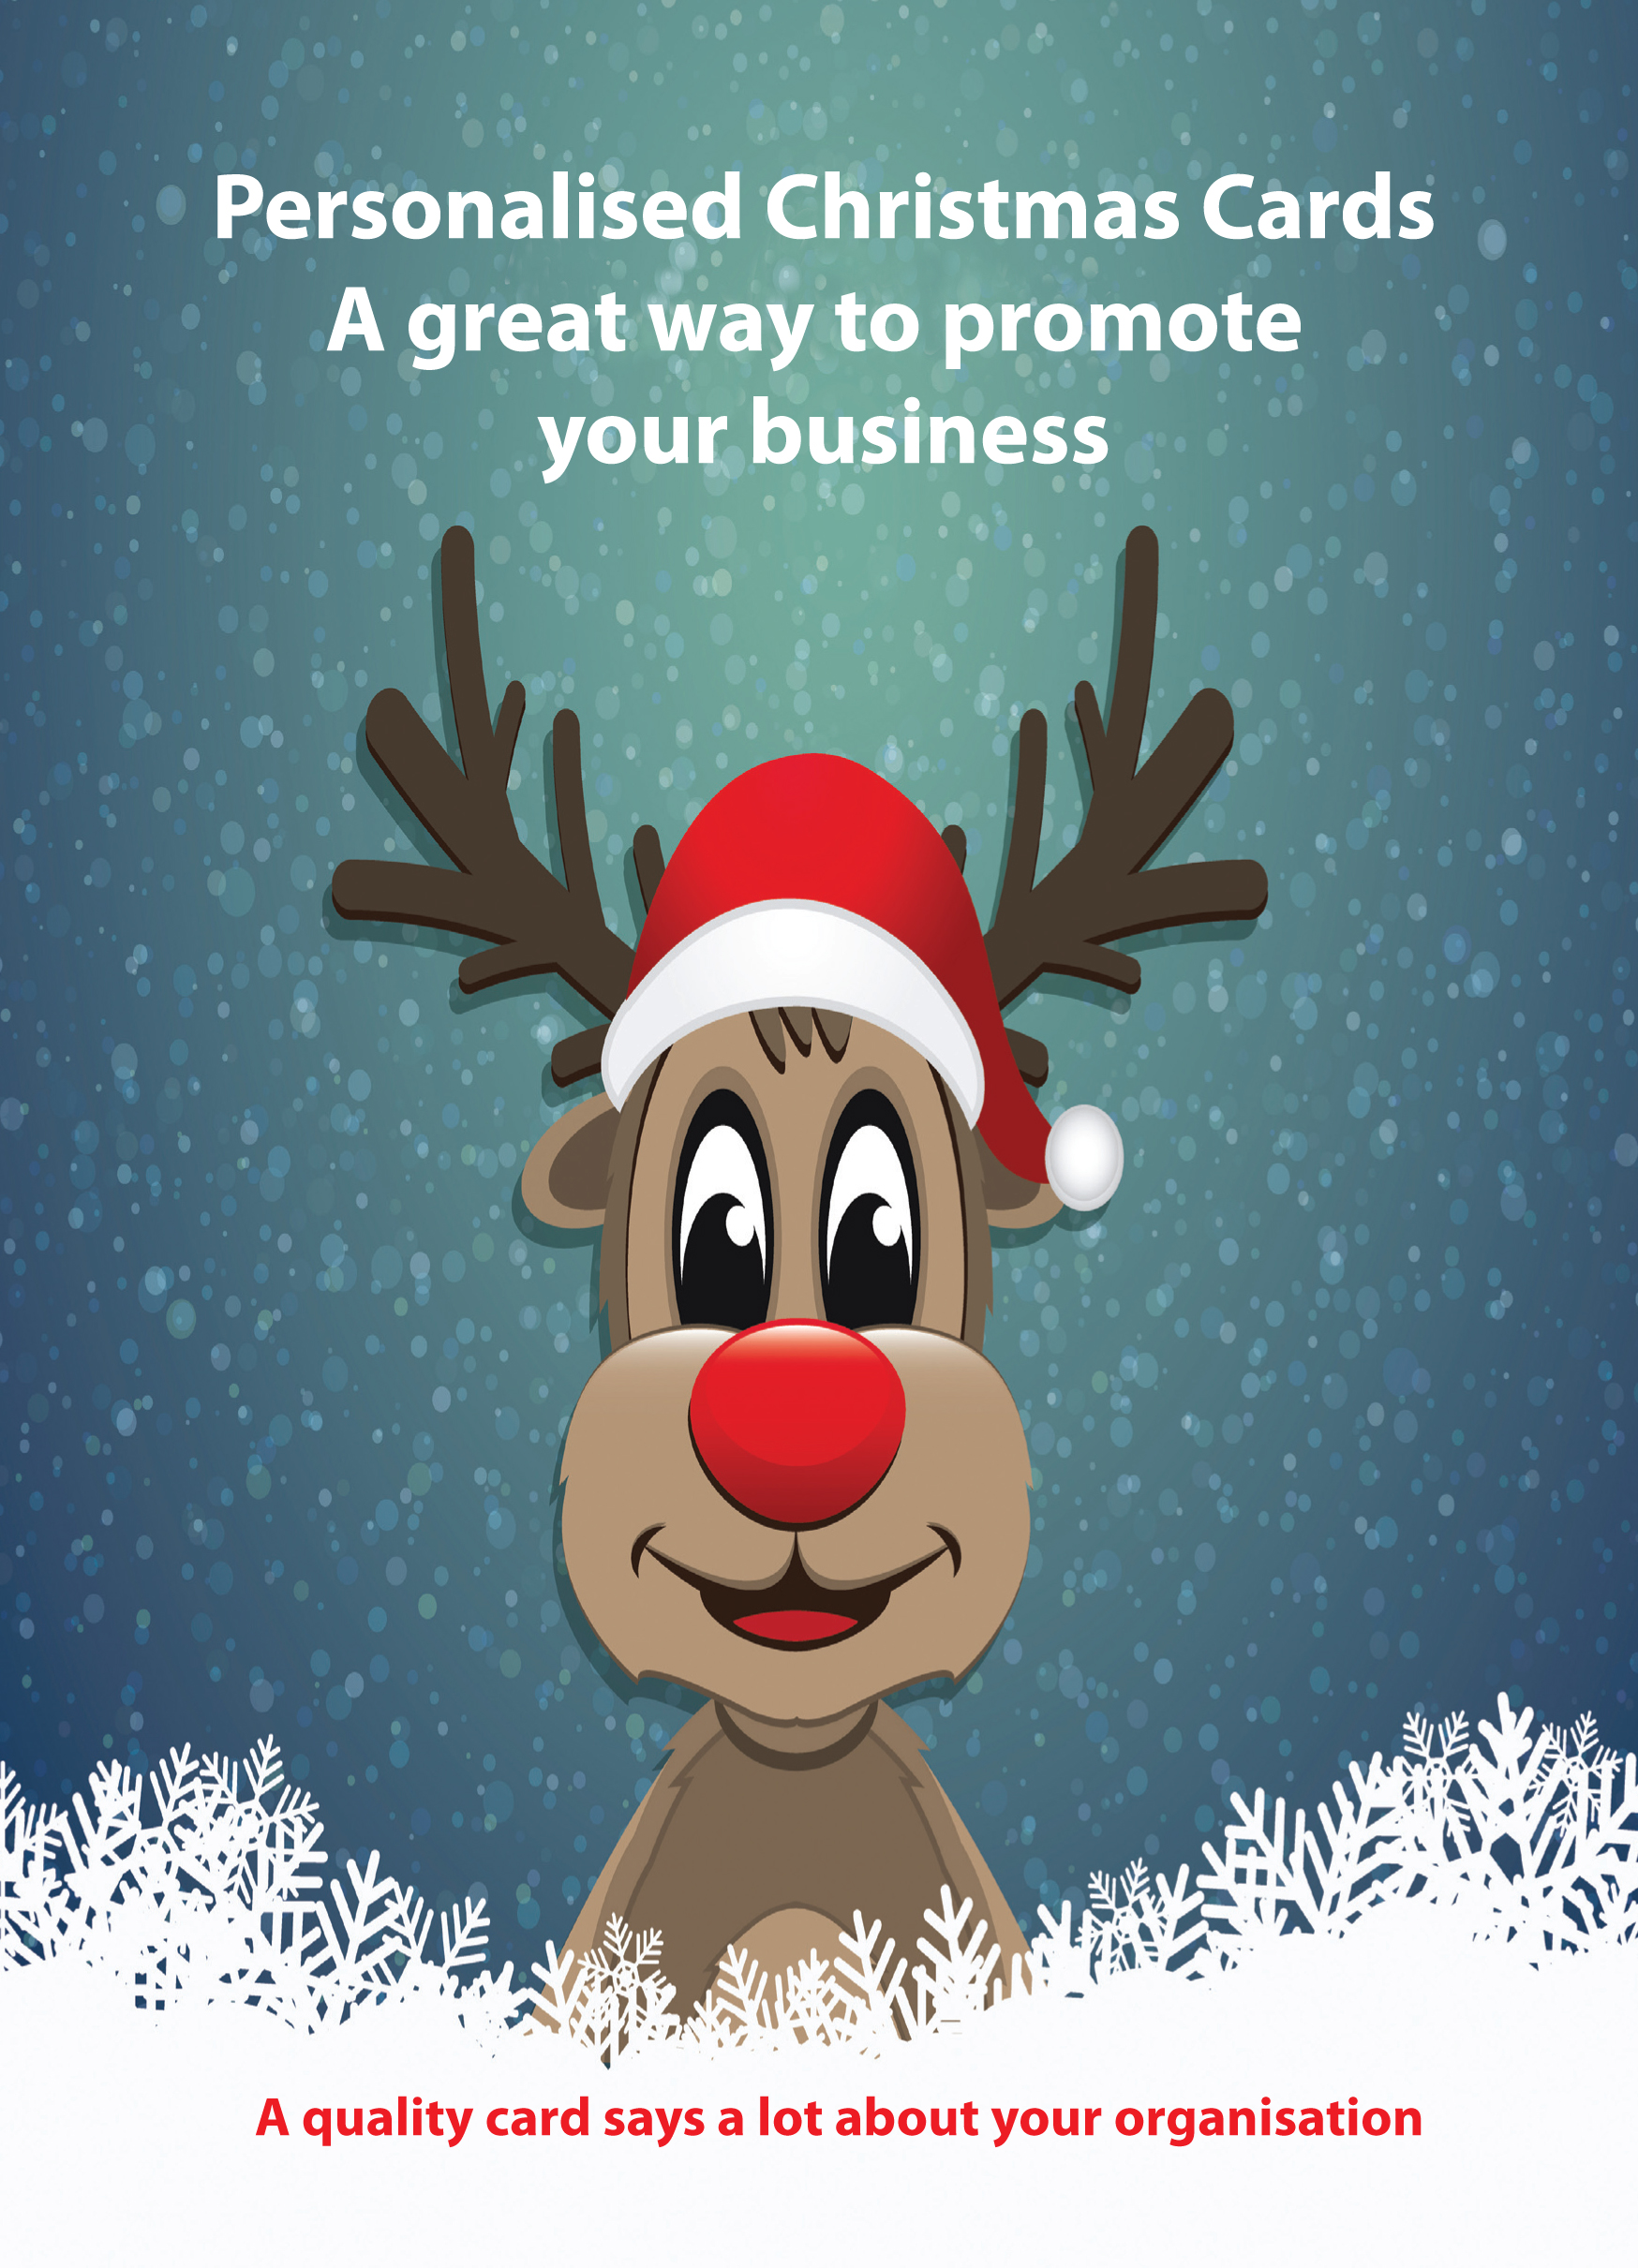 Mcbrinns print solutions quality personalised christmas cards personalised christmas cards a great way to promote your business reheart Images